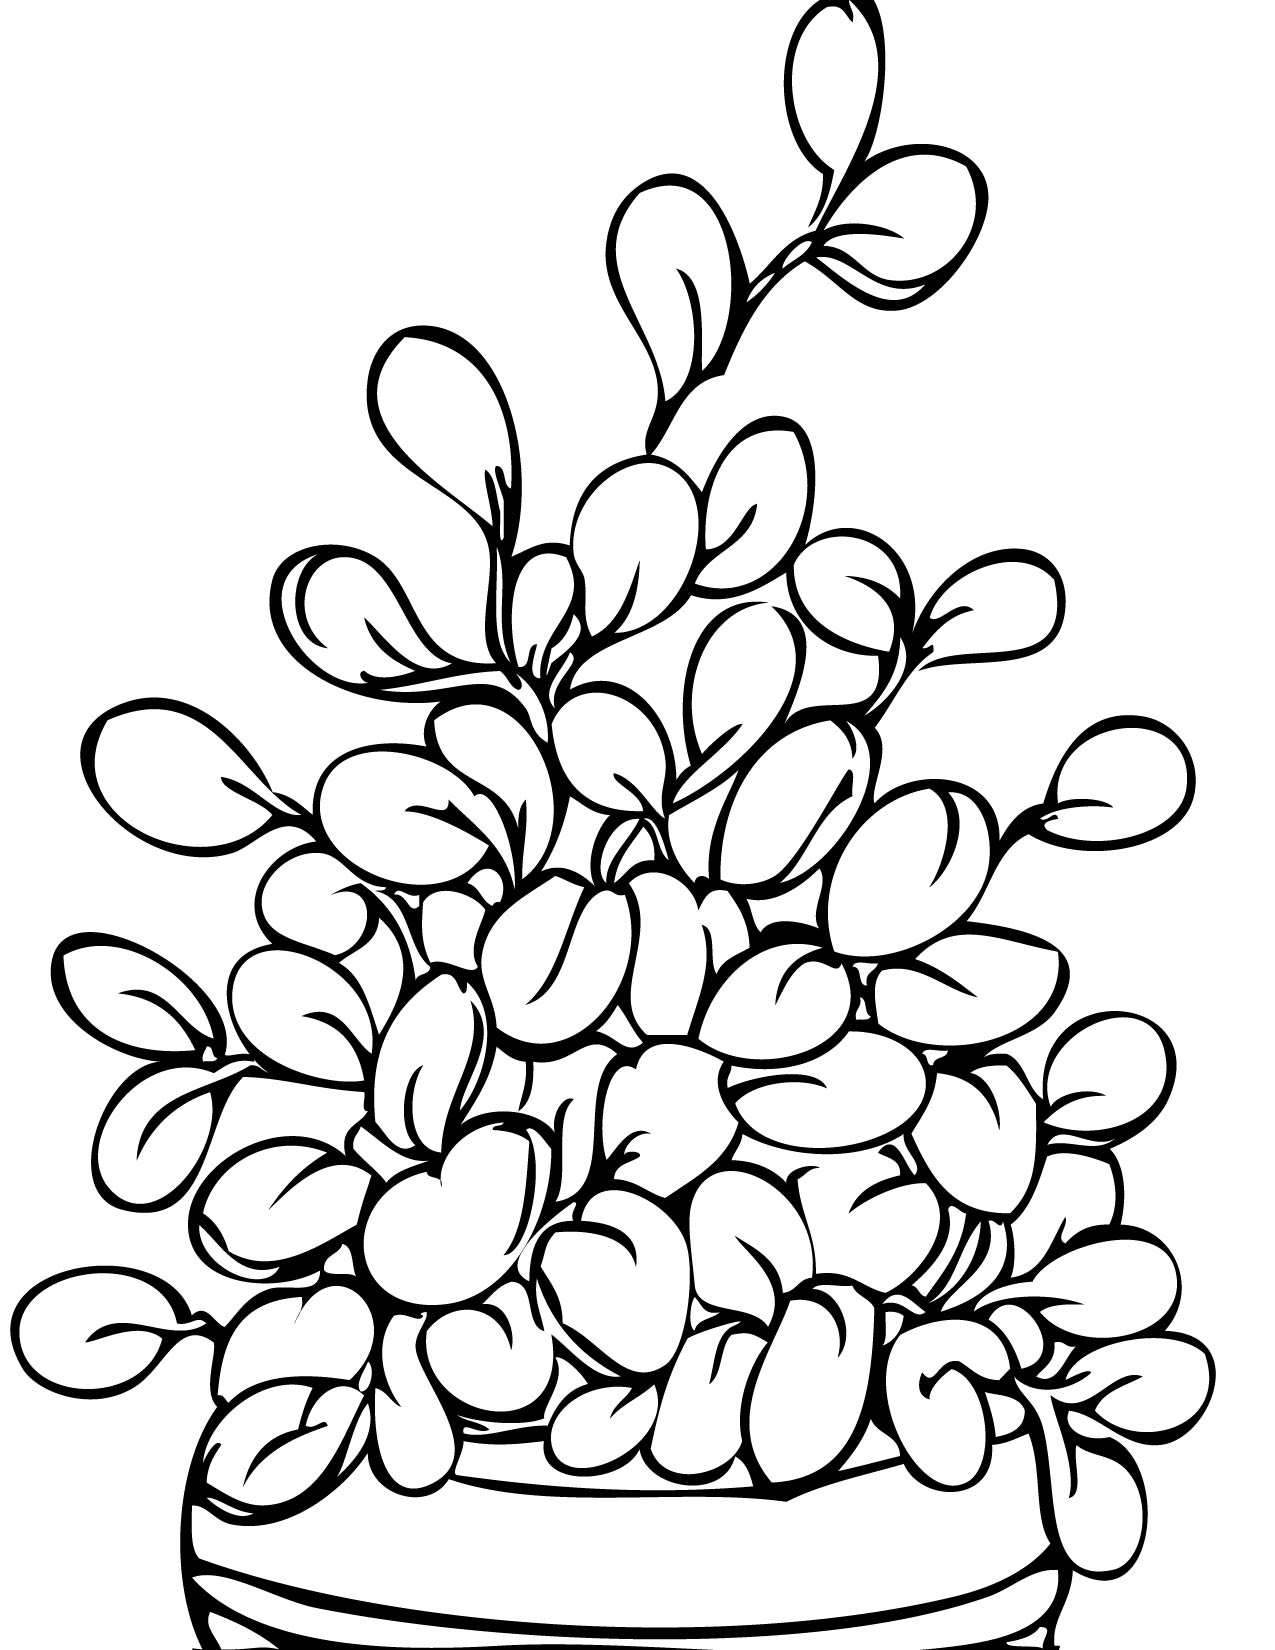 1275x1650 Jade Plant Coloring Page Handipoints Inside Pages